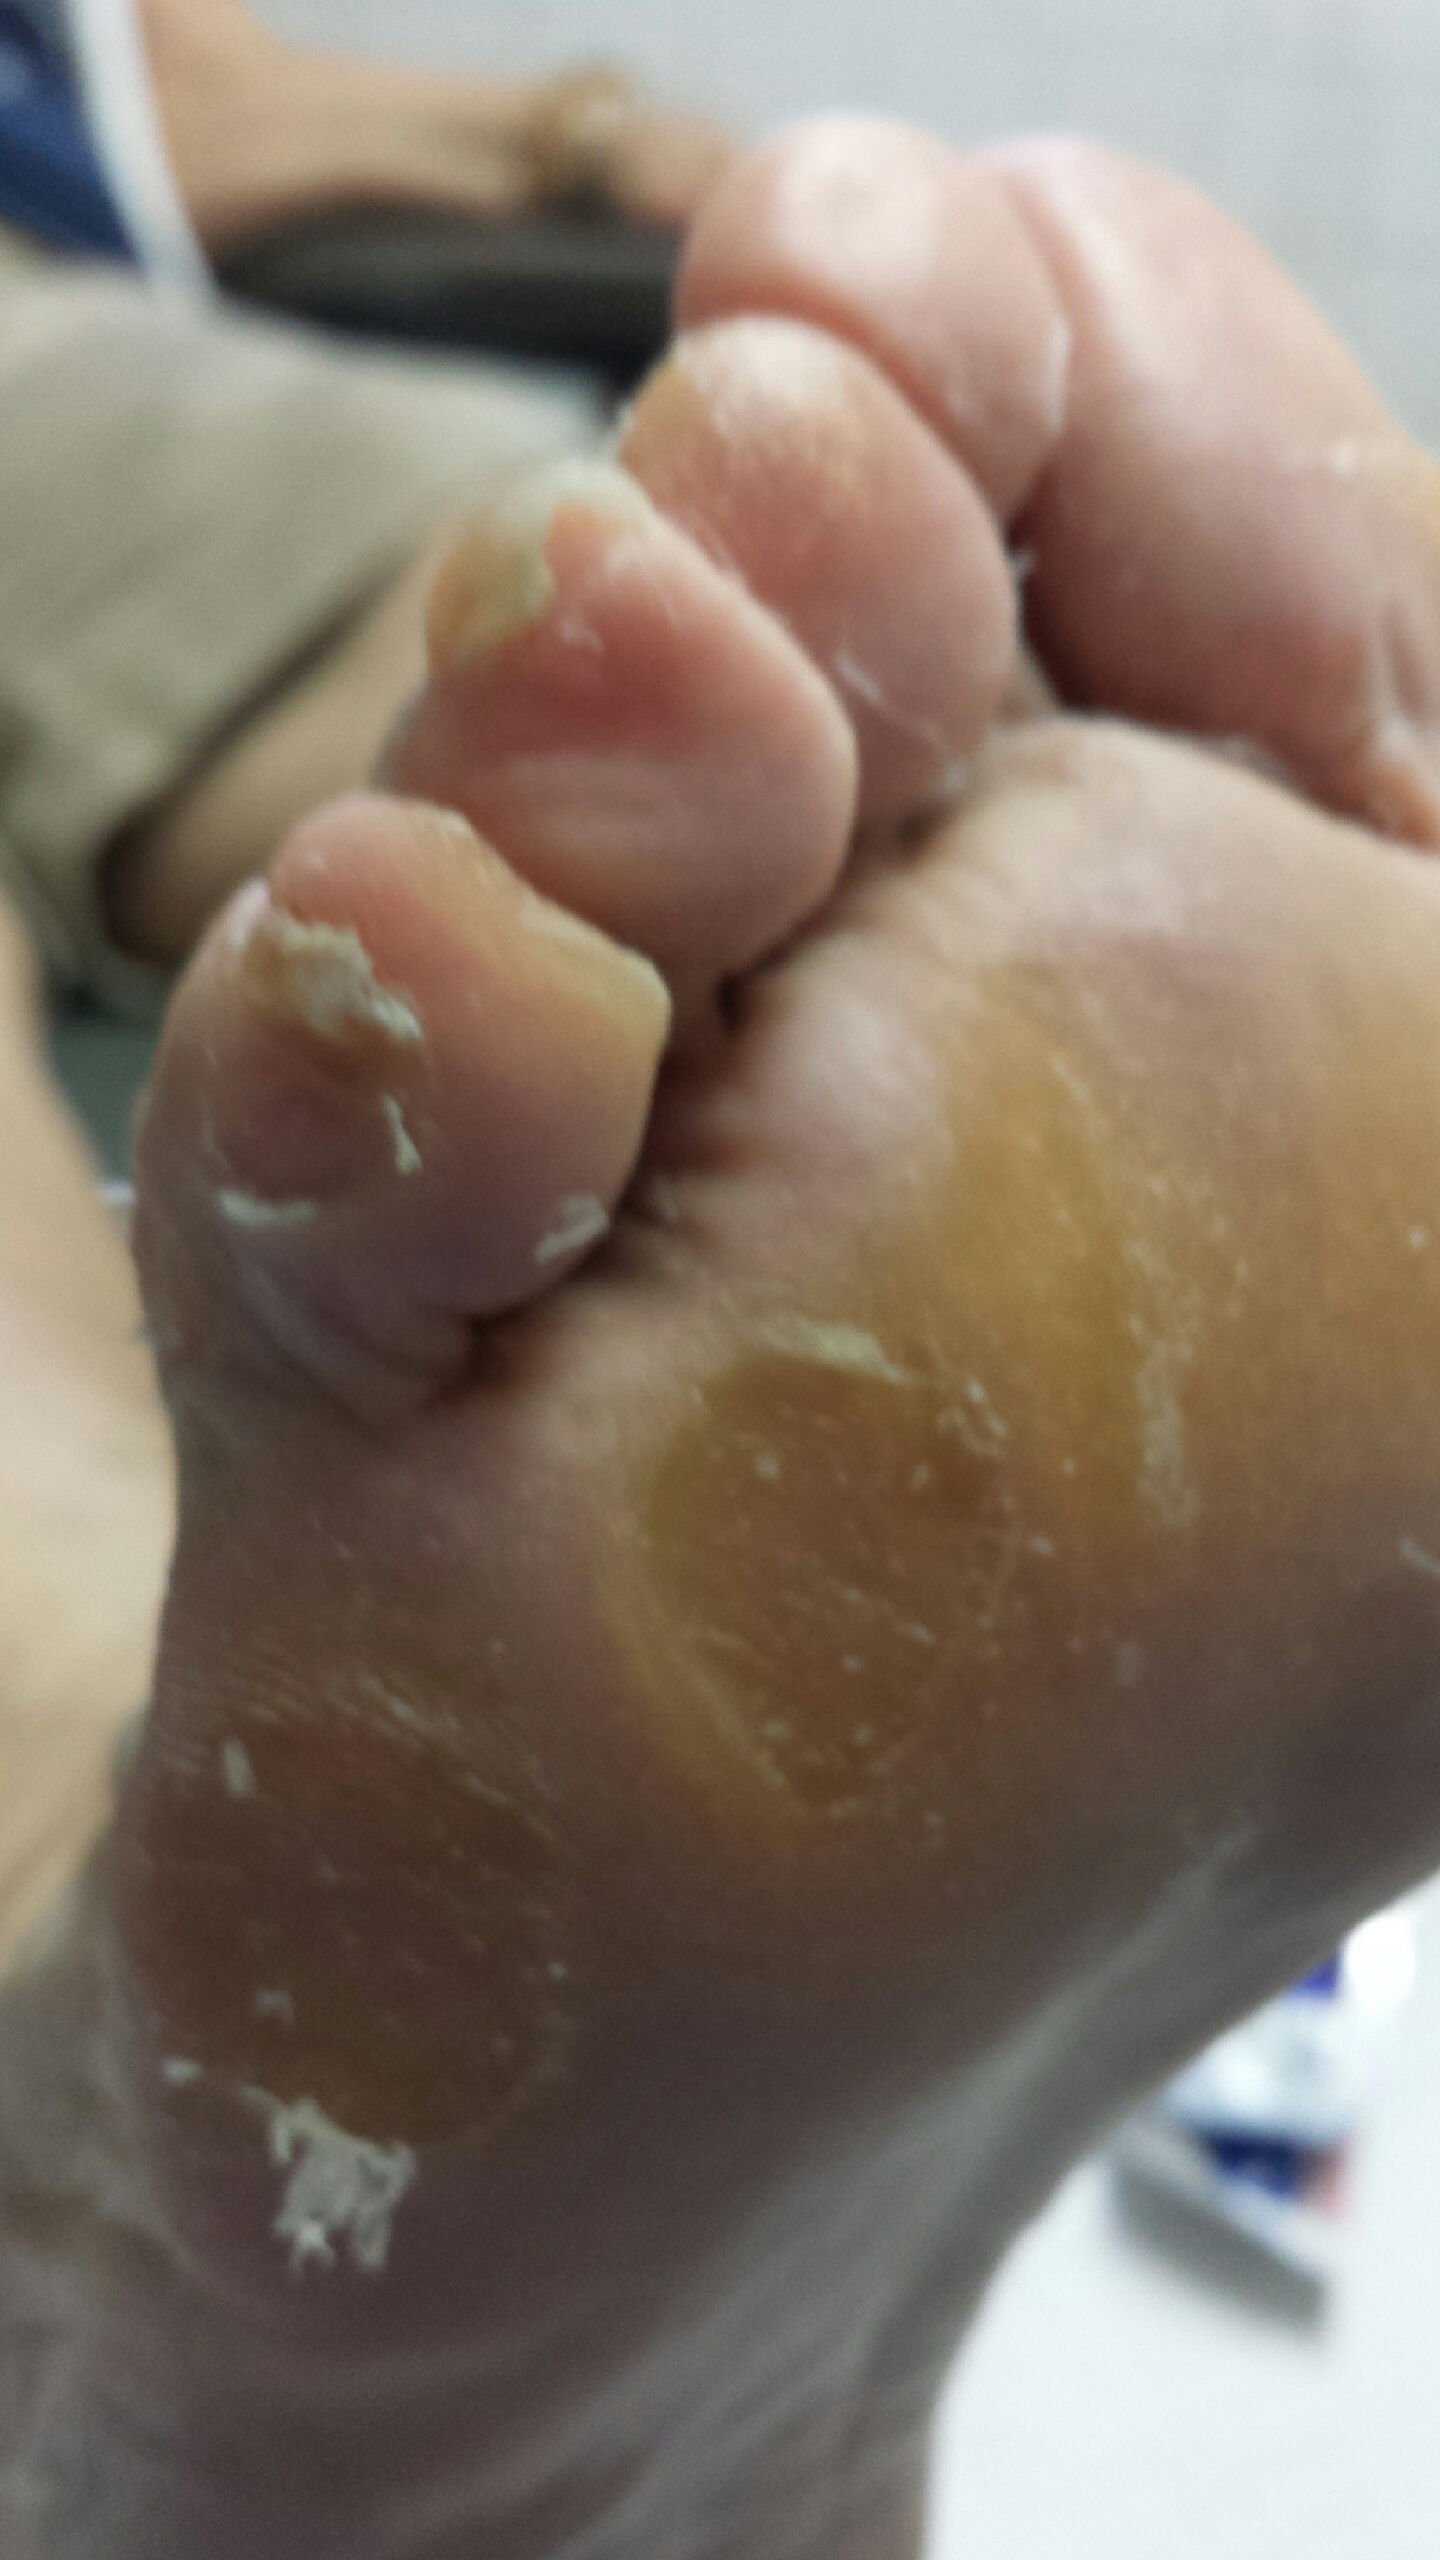 This condition is caused by allowing diabetes to take its course without treatment.